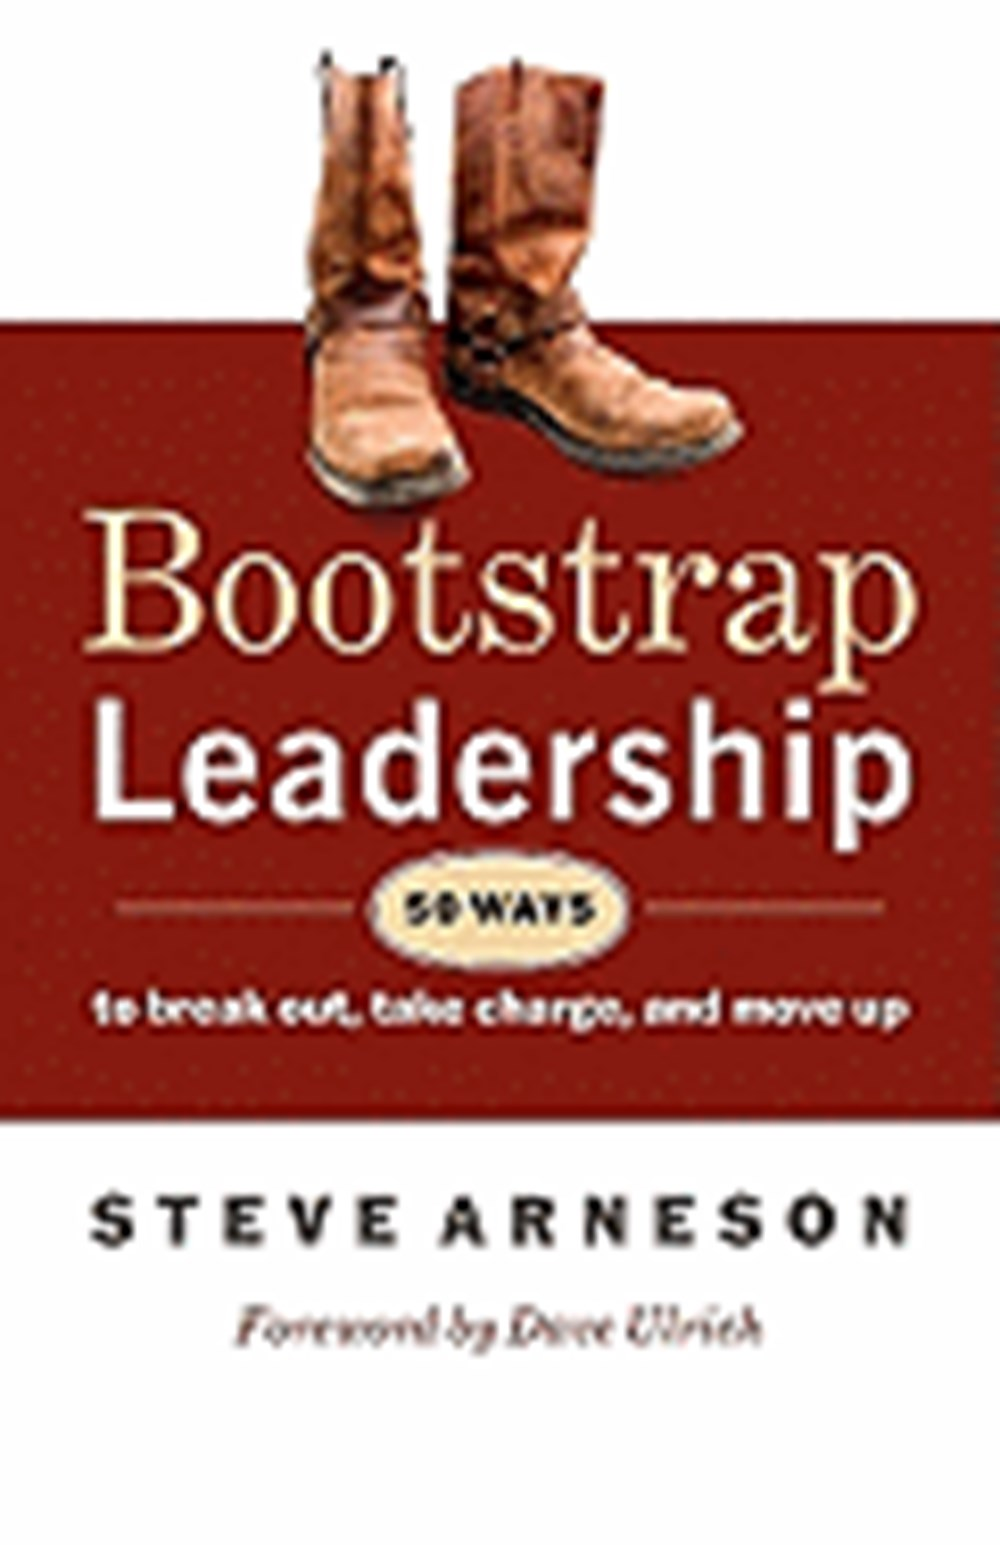 Bootstrap Leadership 50 Ways to Break Out, Take Charge, and Move Up